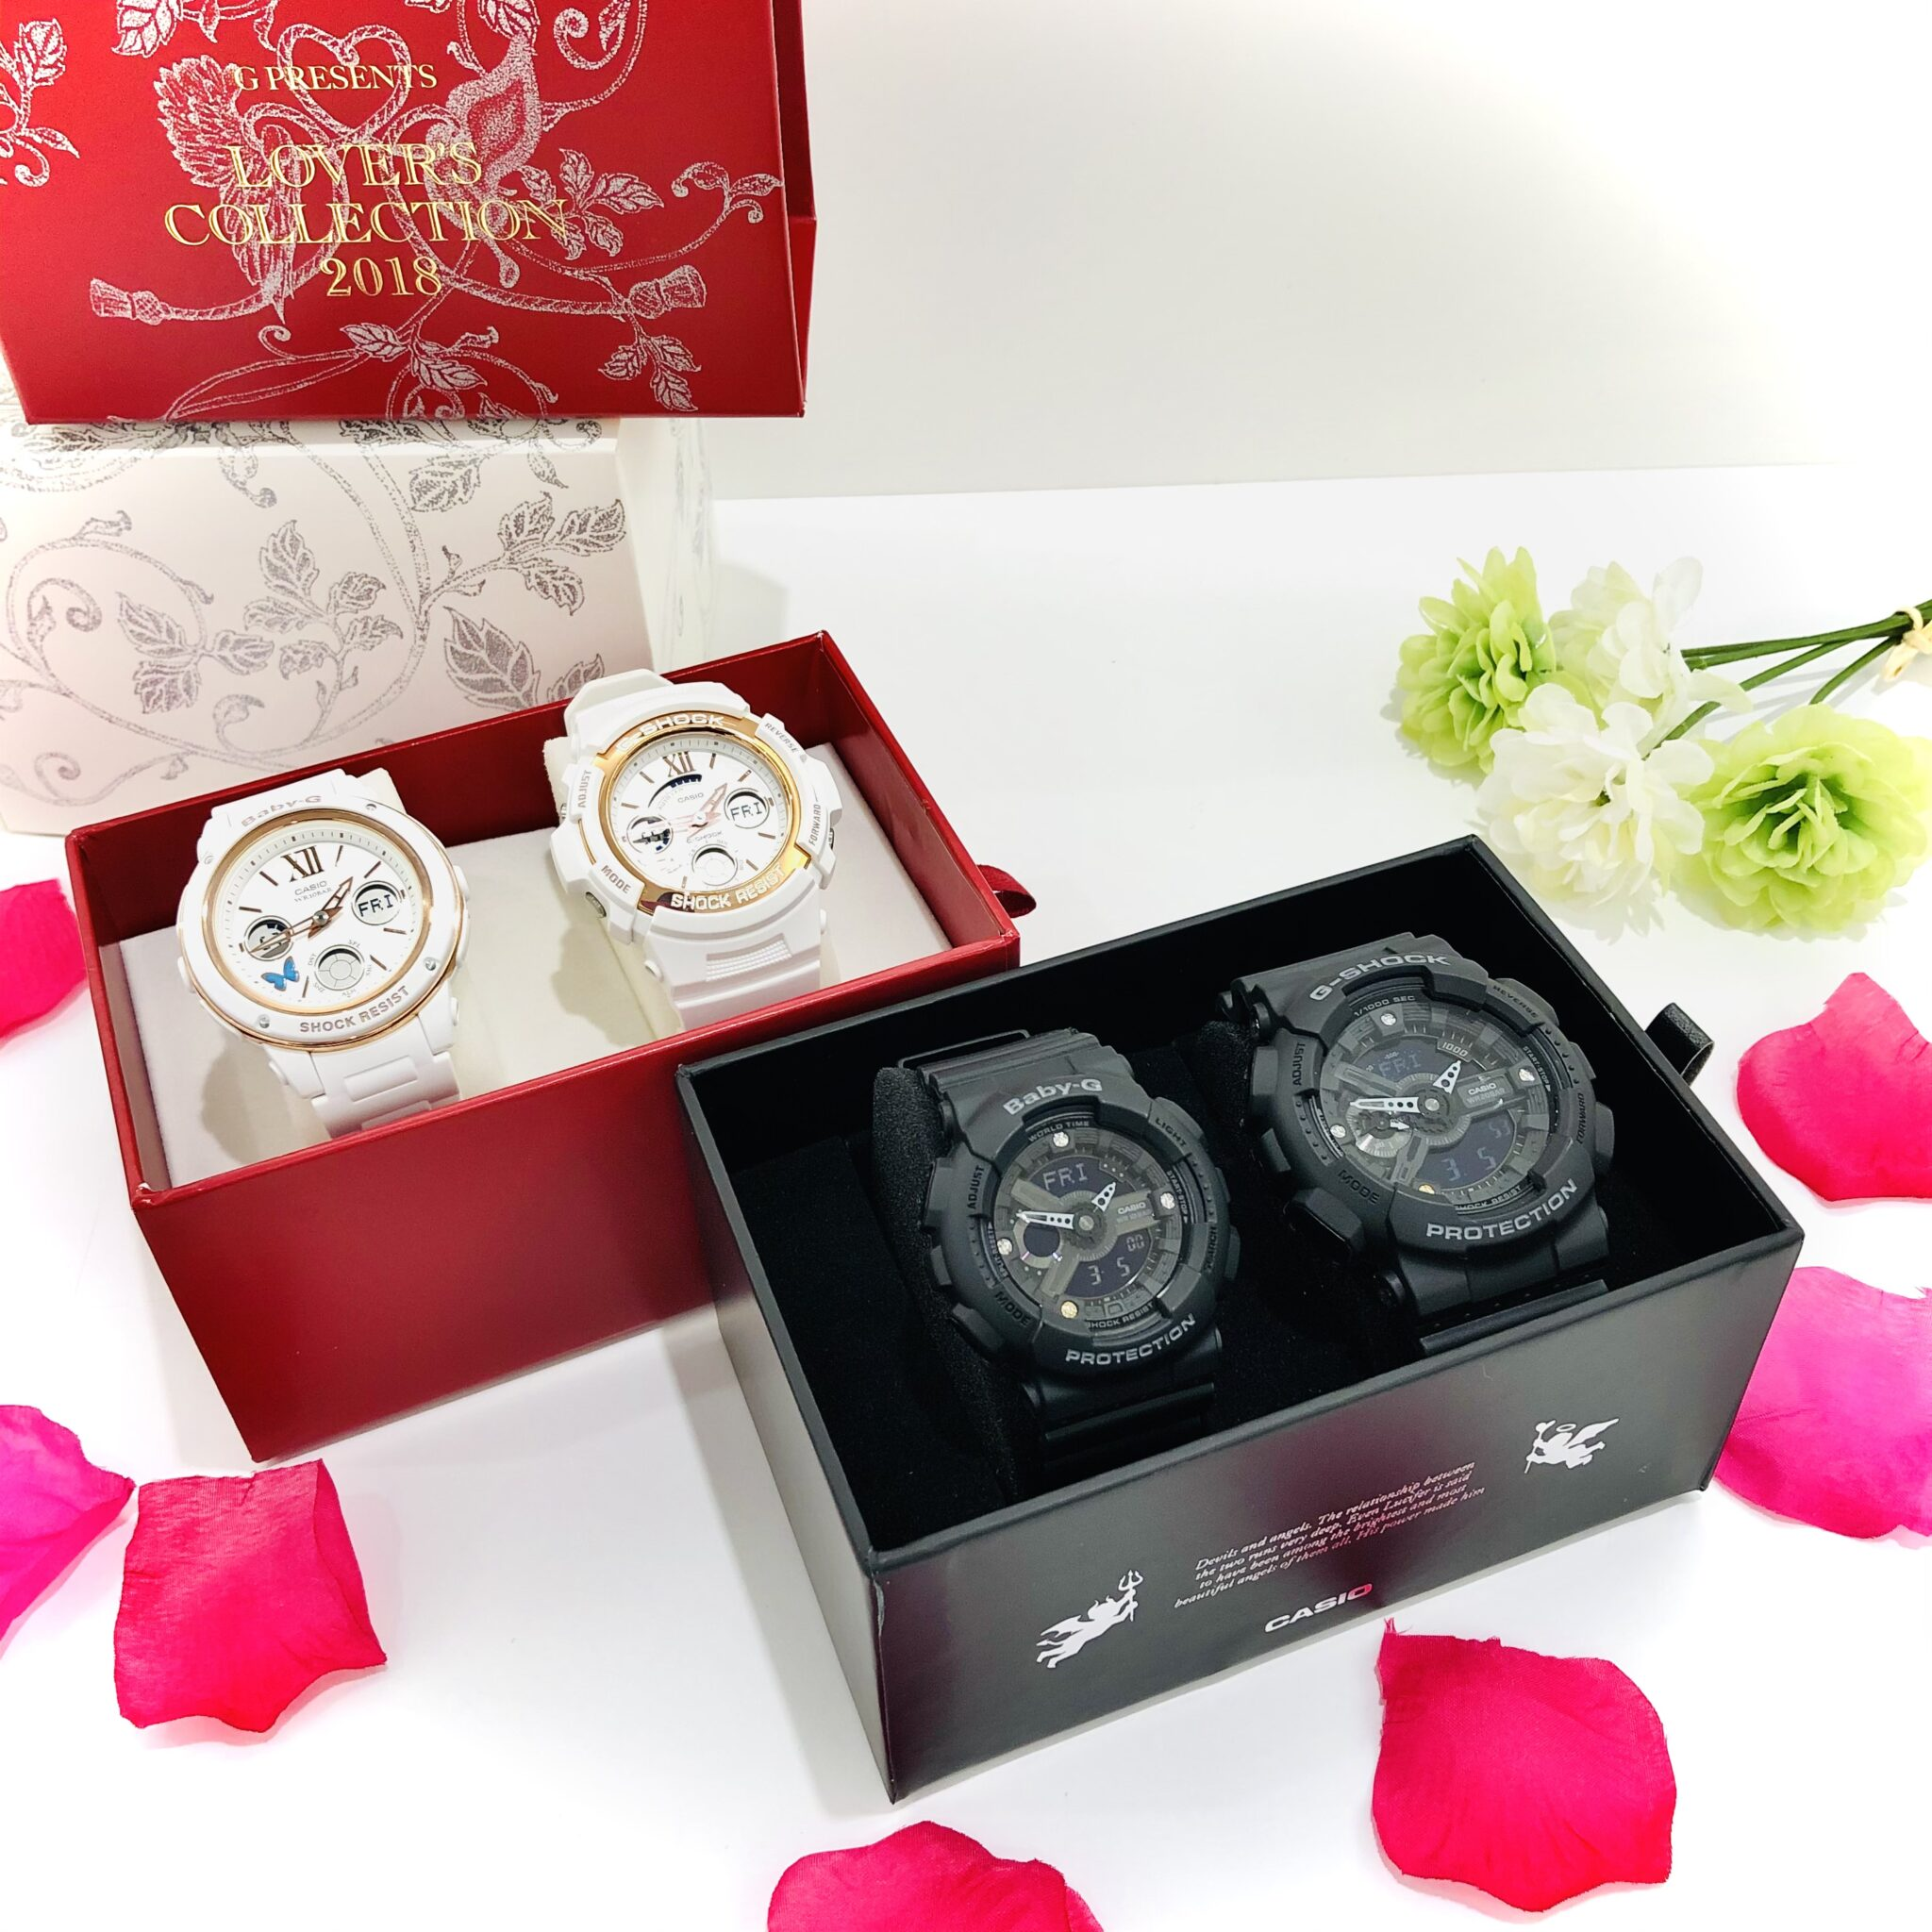 【時計 販売 盛岡】G PRESENTS LOVER'S COLLECTION✨G-SHOCK&BABY-G 限定セット